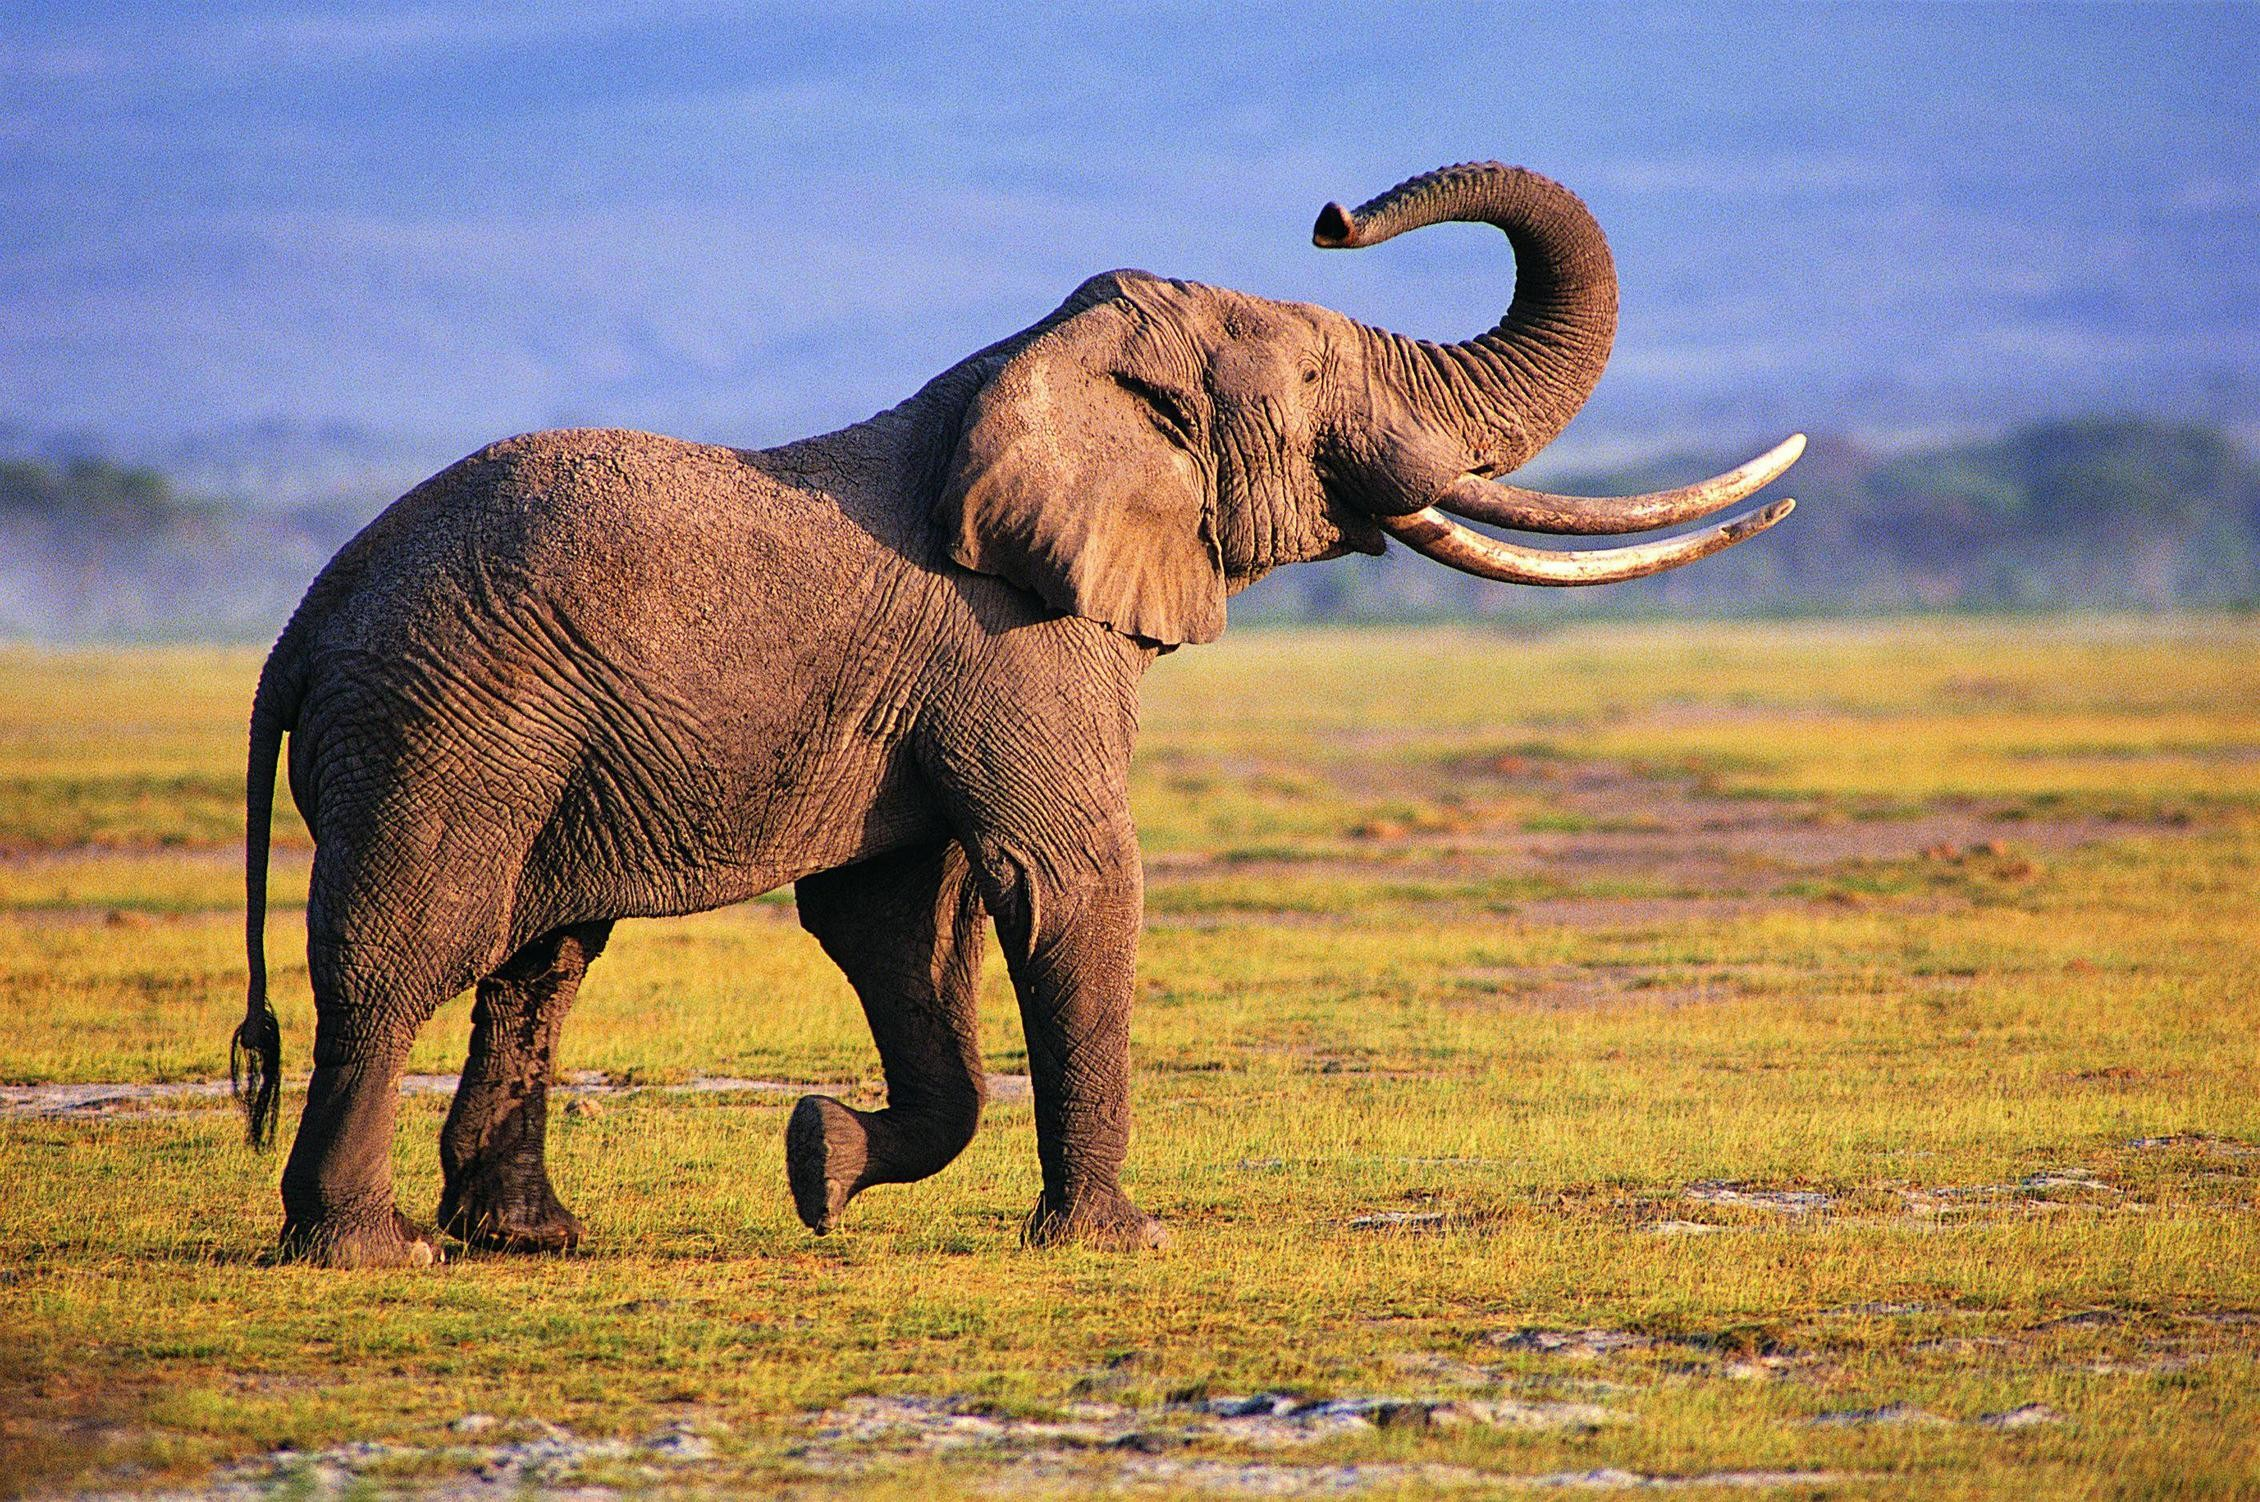 Elephant Wallpaper Download Free Cool Full Hd Wallpapers For